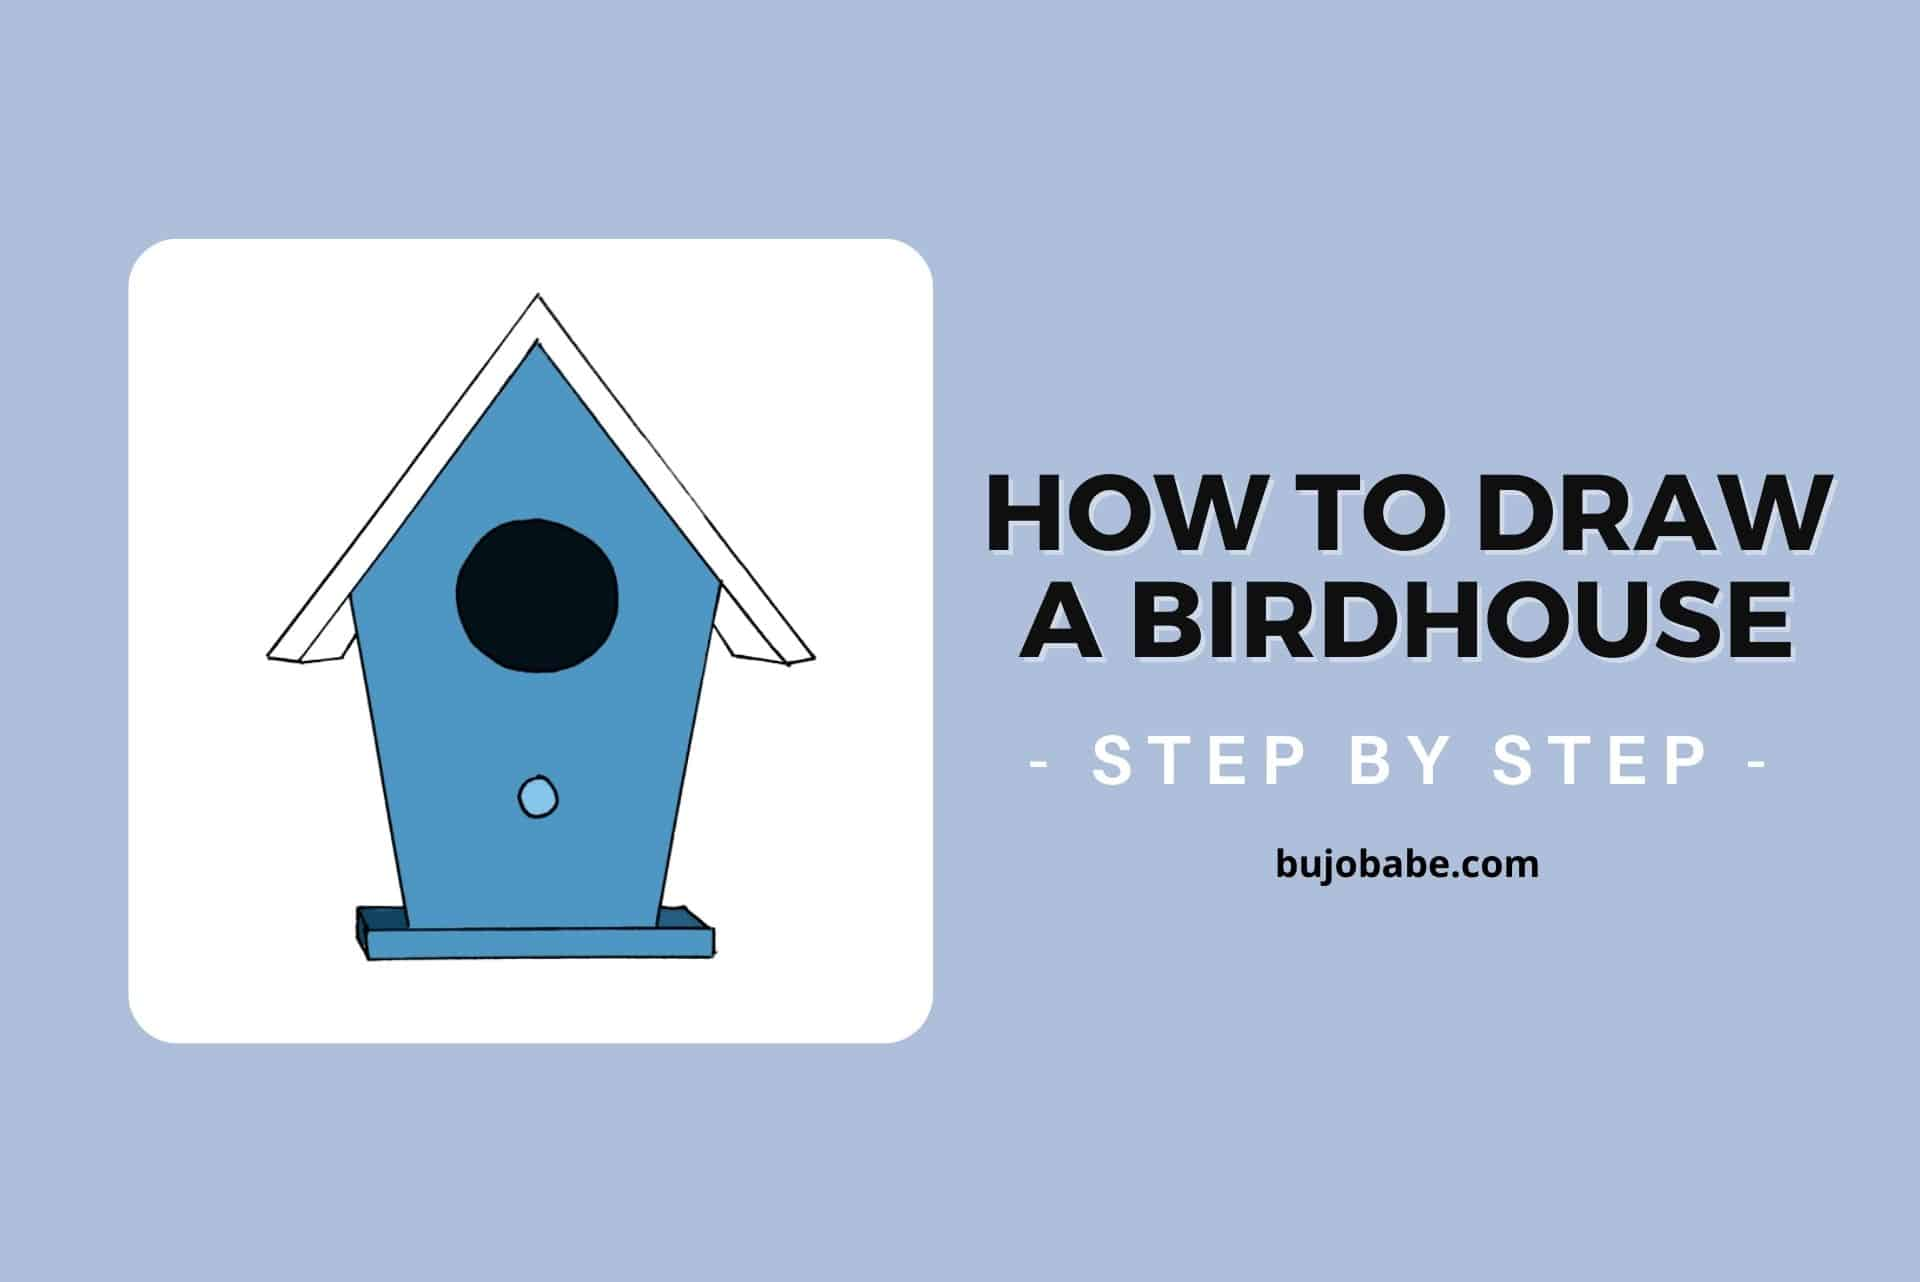 how to draw a birdhouse step by step